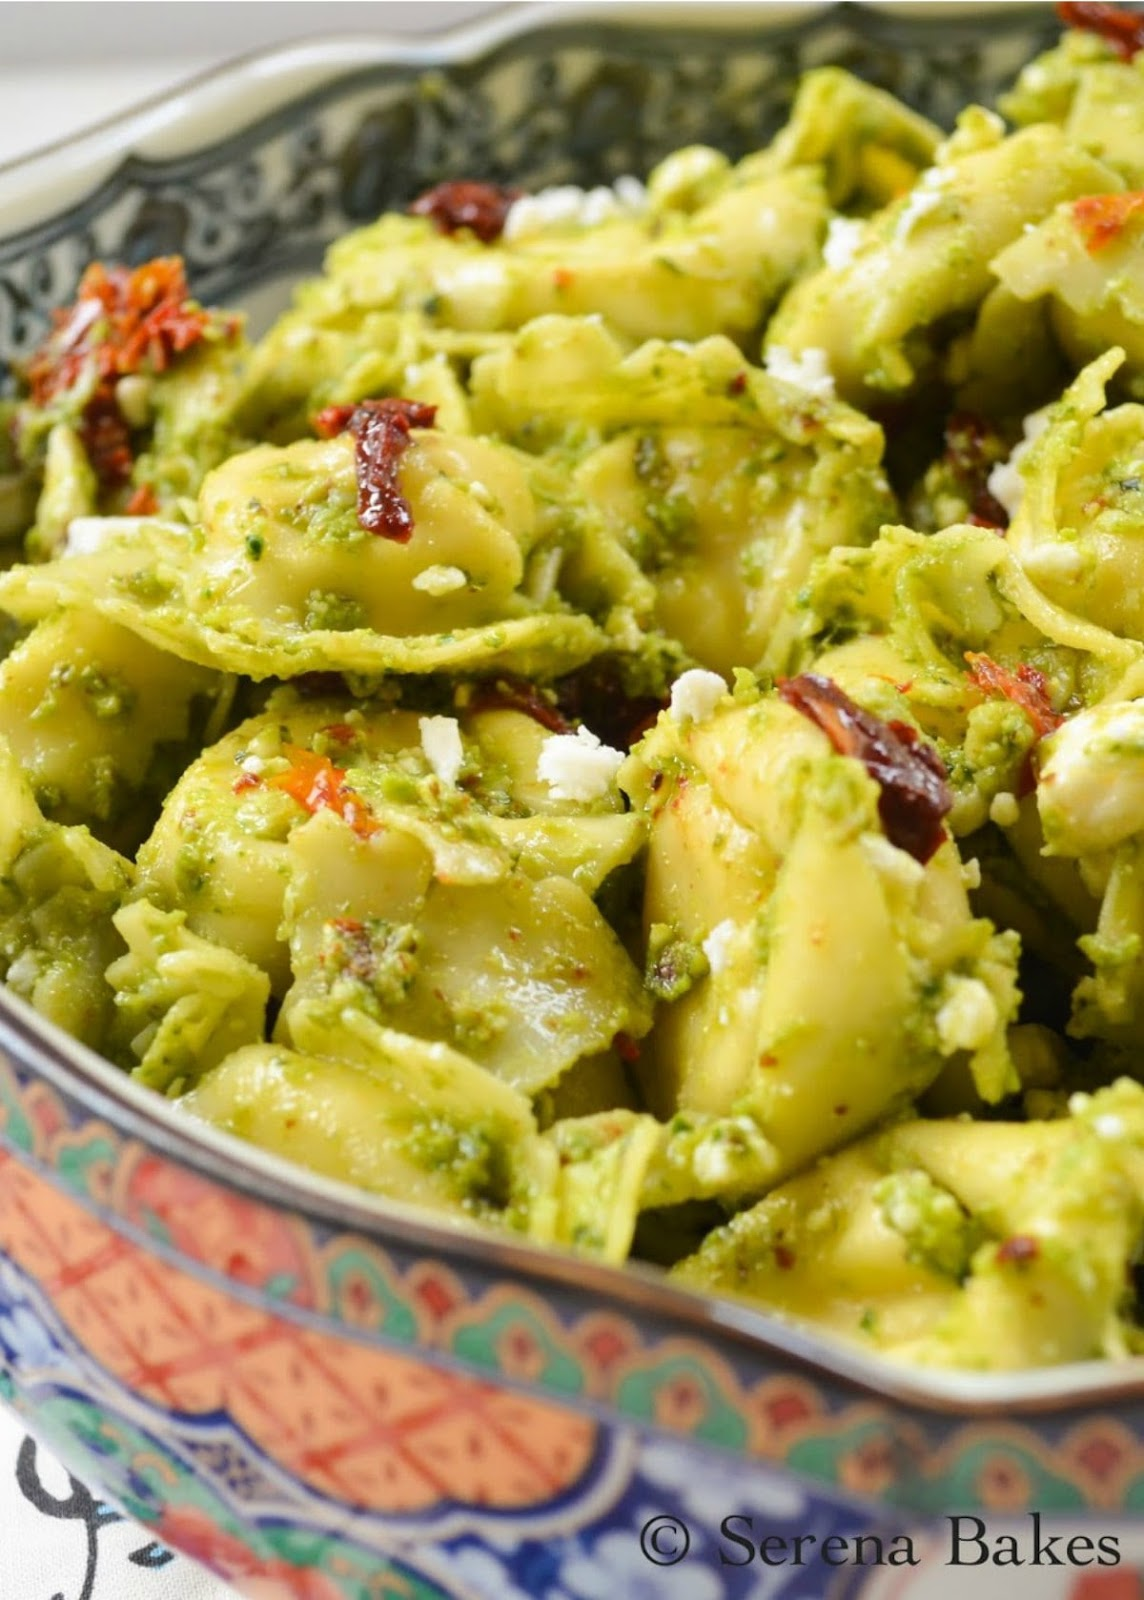 Tortellini Pesto Pasta Salad with Feta is a favorite pasta salad recipe. It's great for an easy lunch, dinner or side dish from Serena Bakes Simply From Scratch.